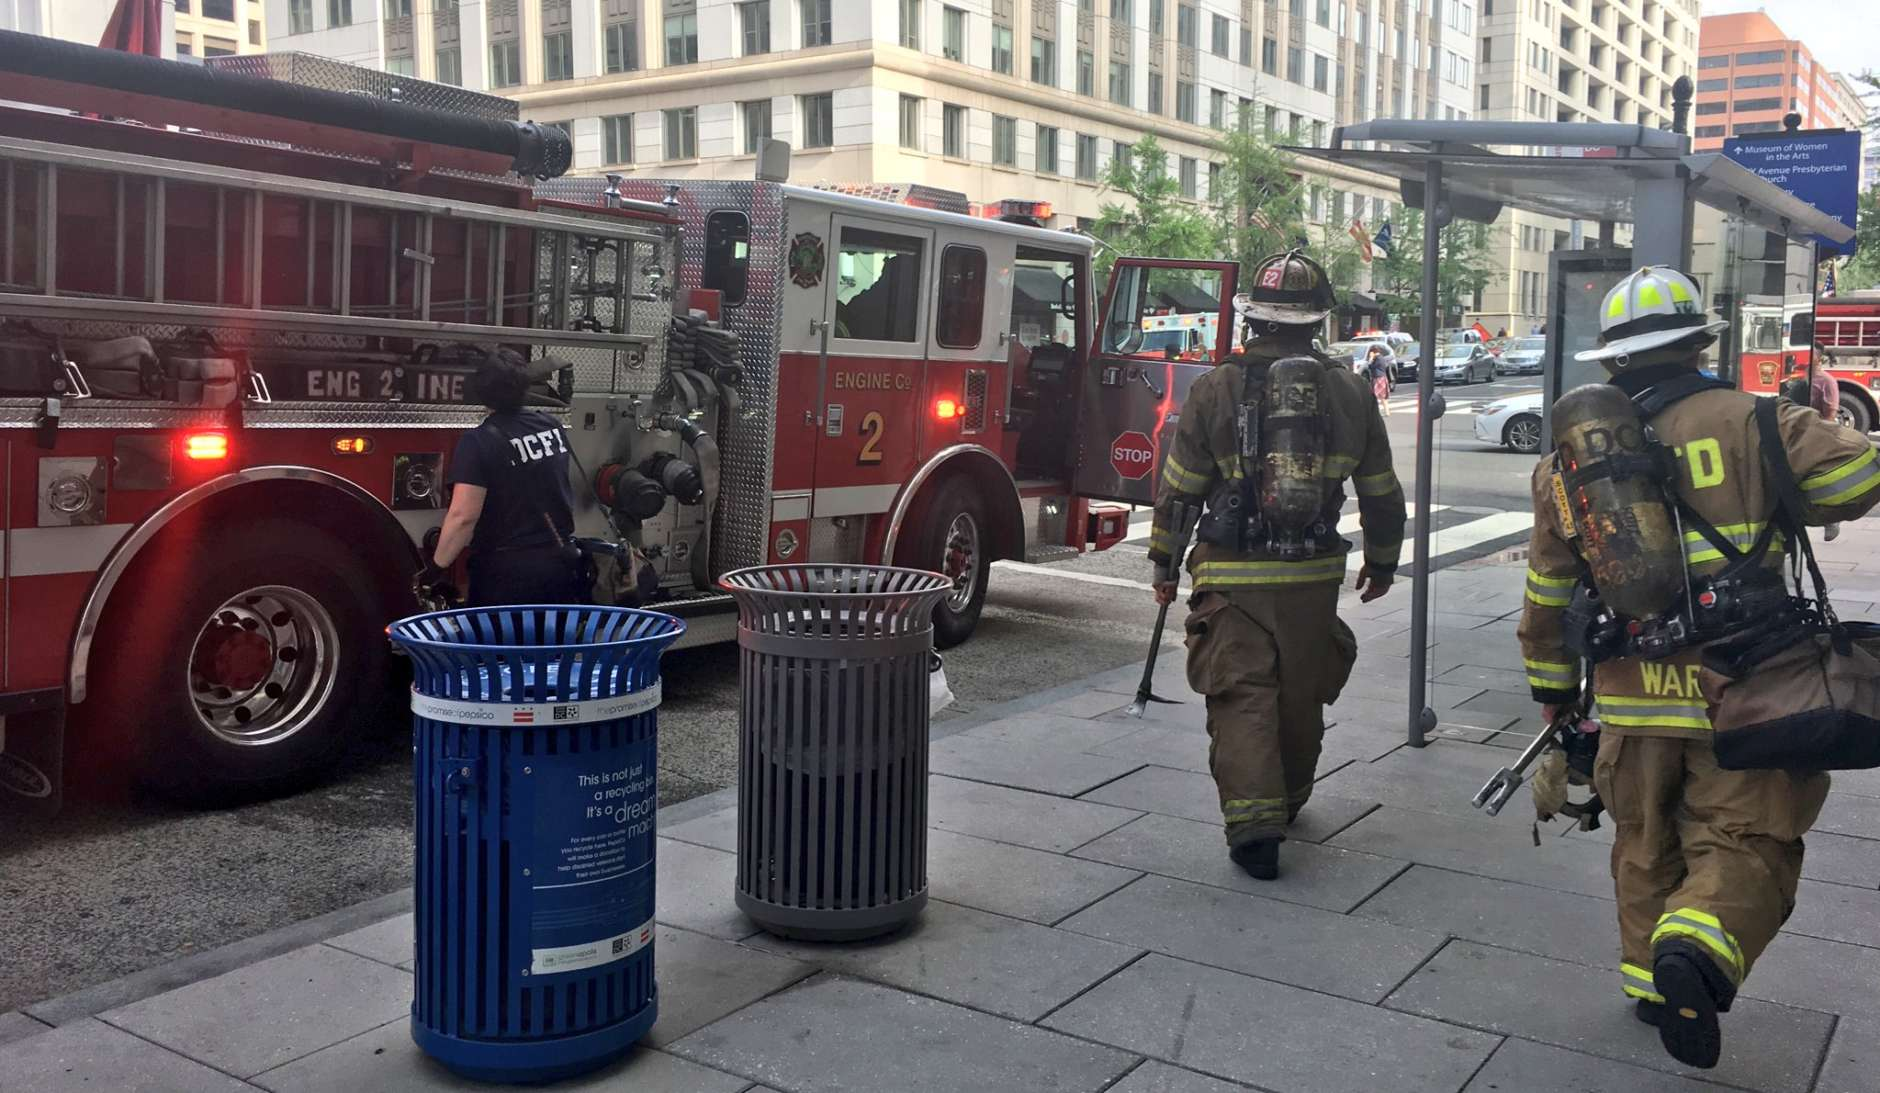 D.C. fire officials leave the scene where they were investigating smoke in a Metro tunnel Thursday morning. (Courtesy D.C. Fire & EMS)